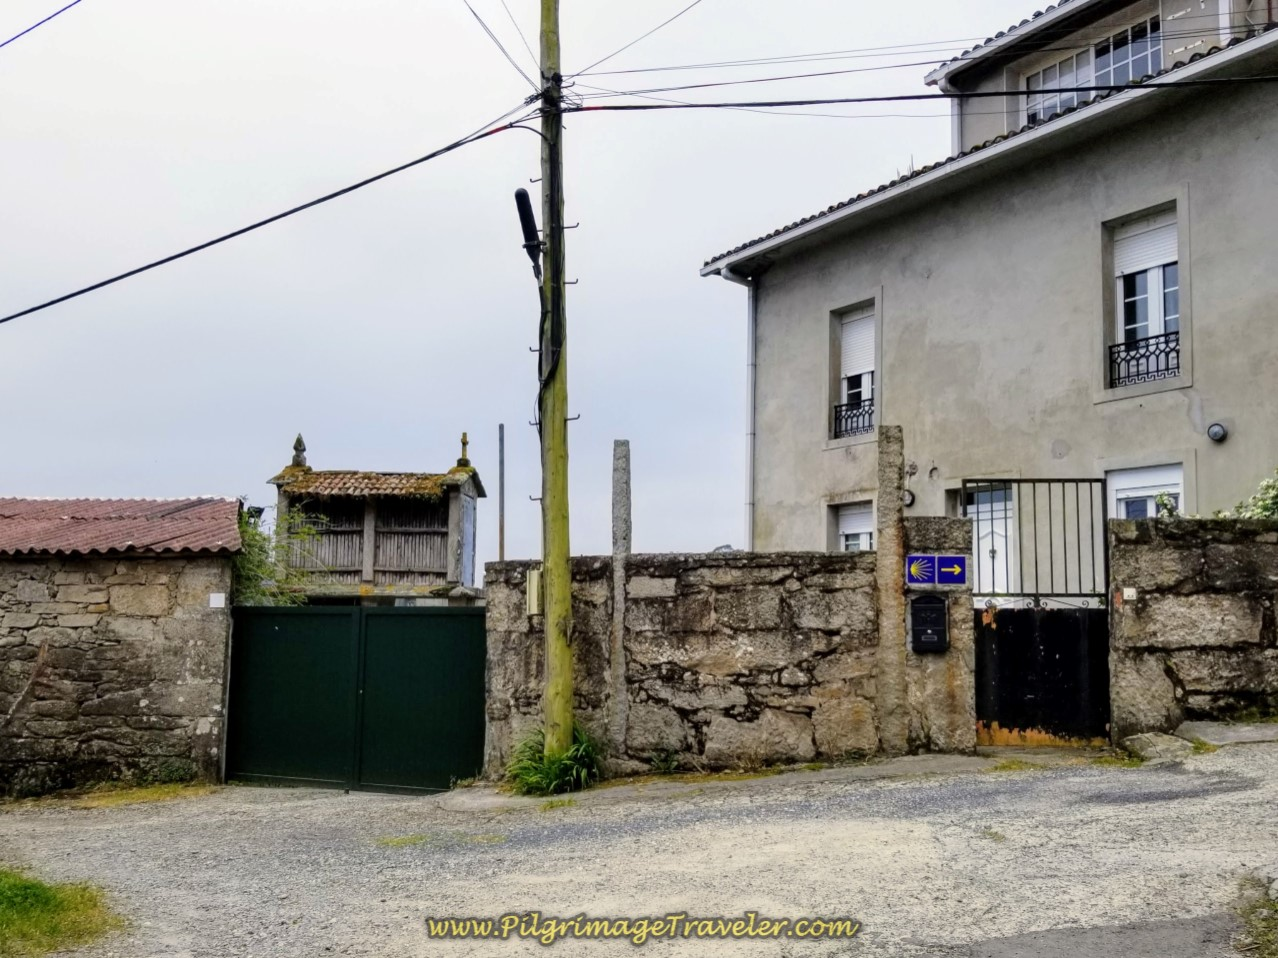 Right Turn at Horreo (Granary) in O Carballal on day one of the Camino Finisterre